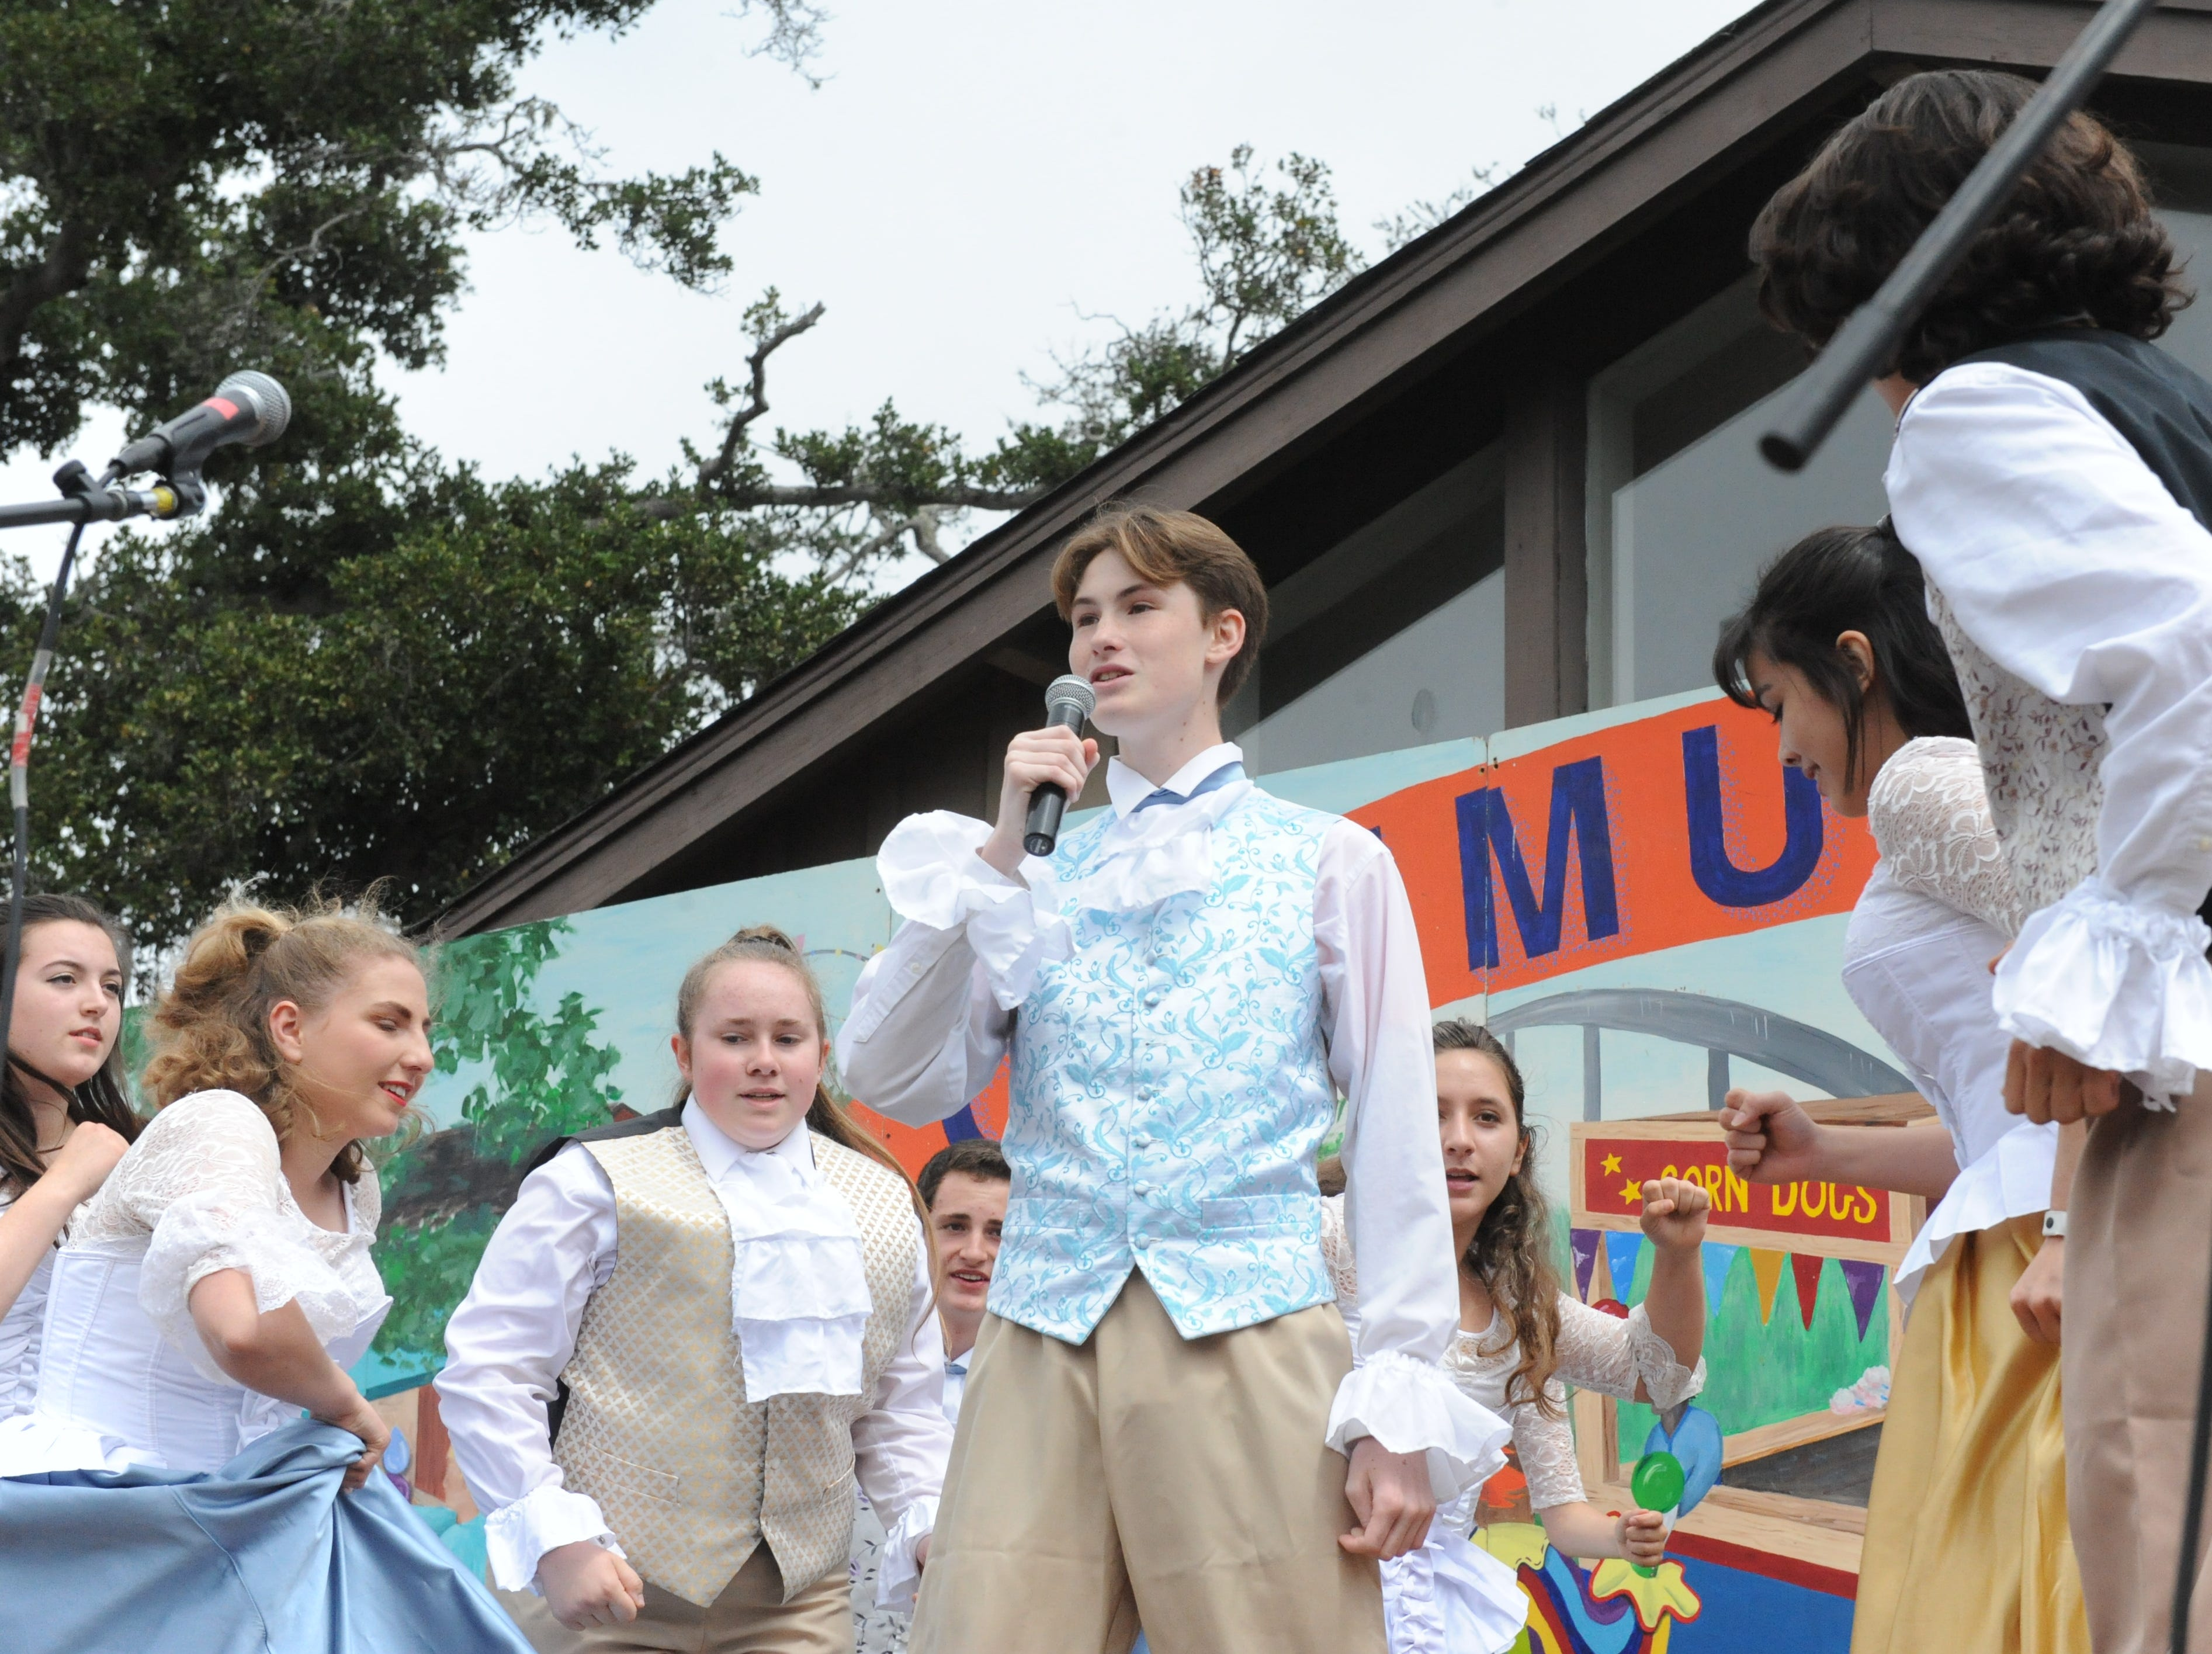 A group from the Carmel Academy of Performing Arts sings a rendition of the Broadway musical Hamilton at the Monterey County Fair Saturday.